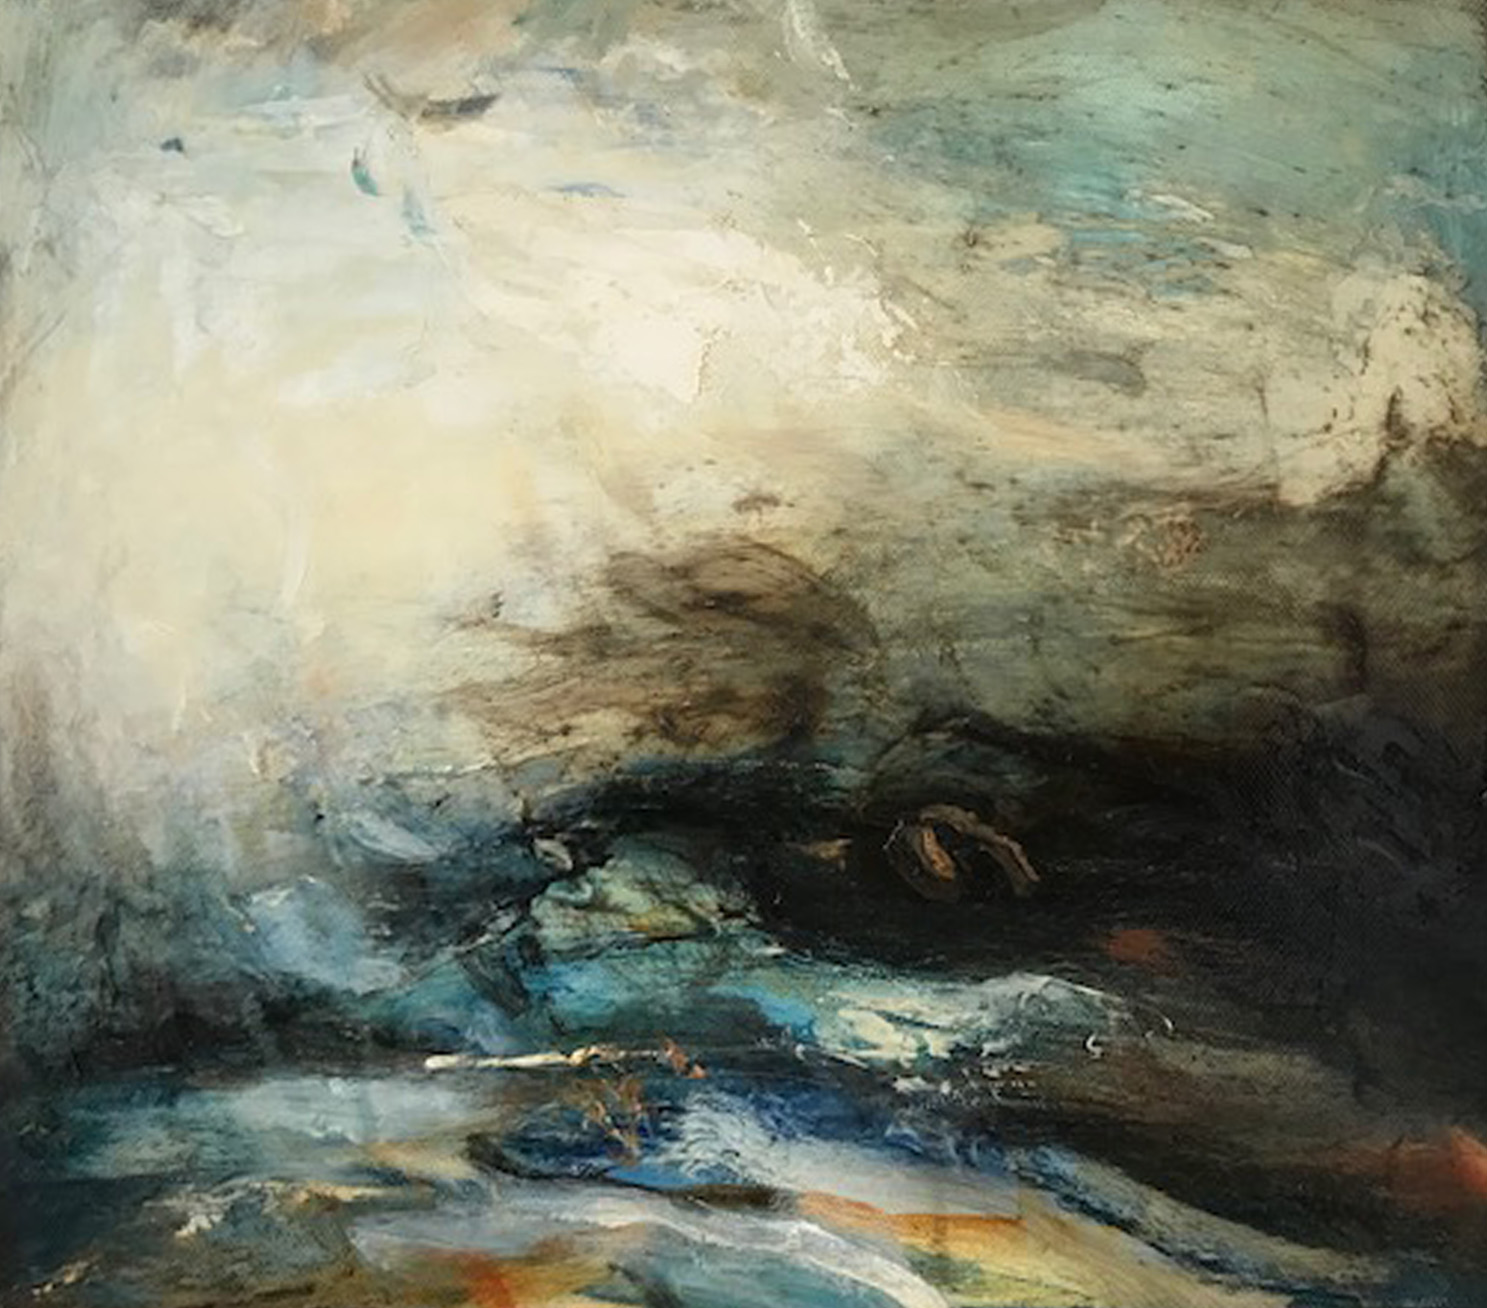 Artist: Mark Johnston  Title: Surge  Size: 30 x 36 cm  Medium: Oil on linen  Price: £1700